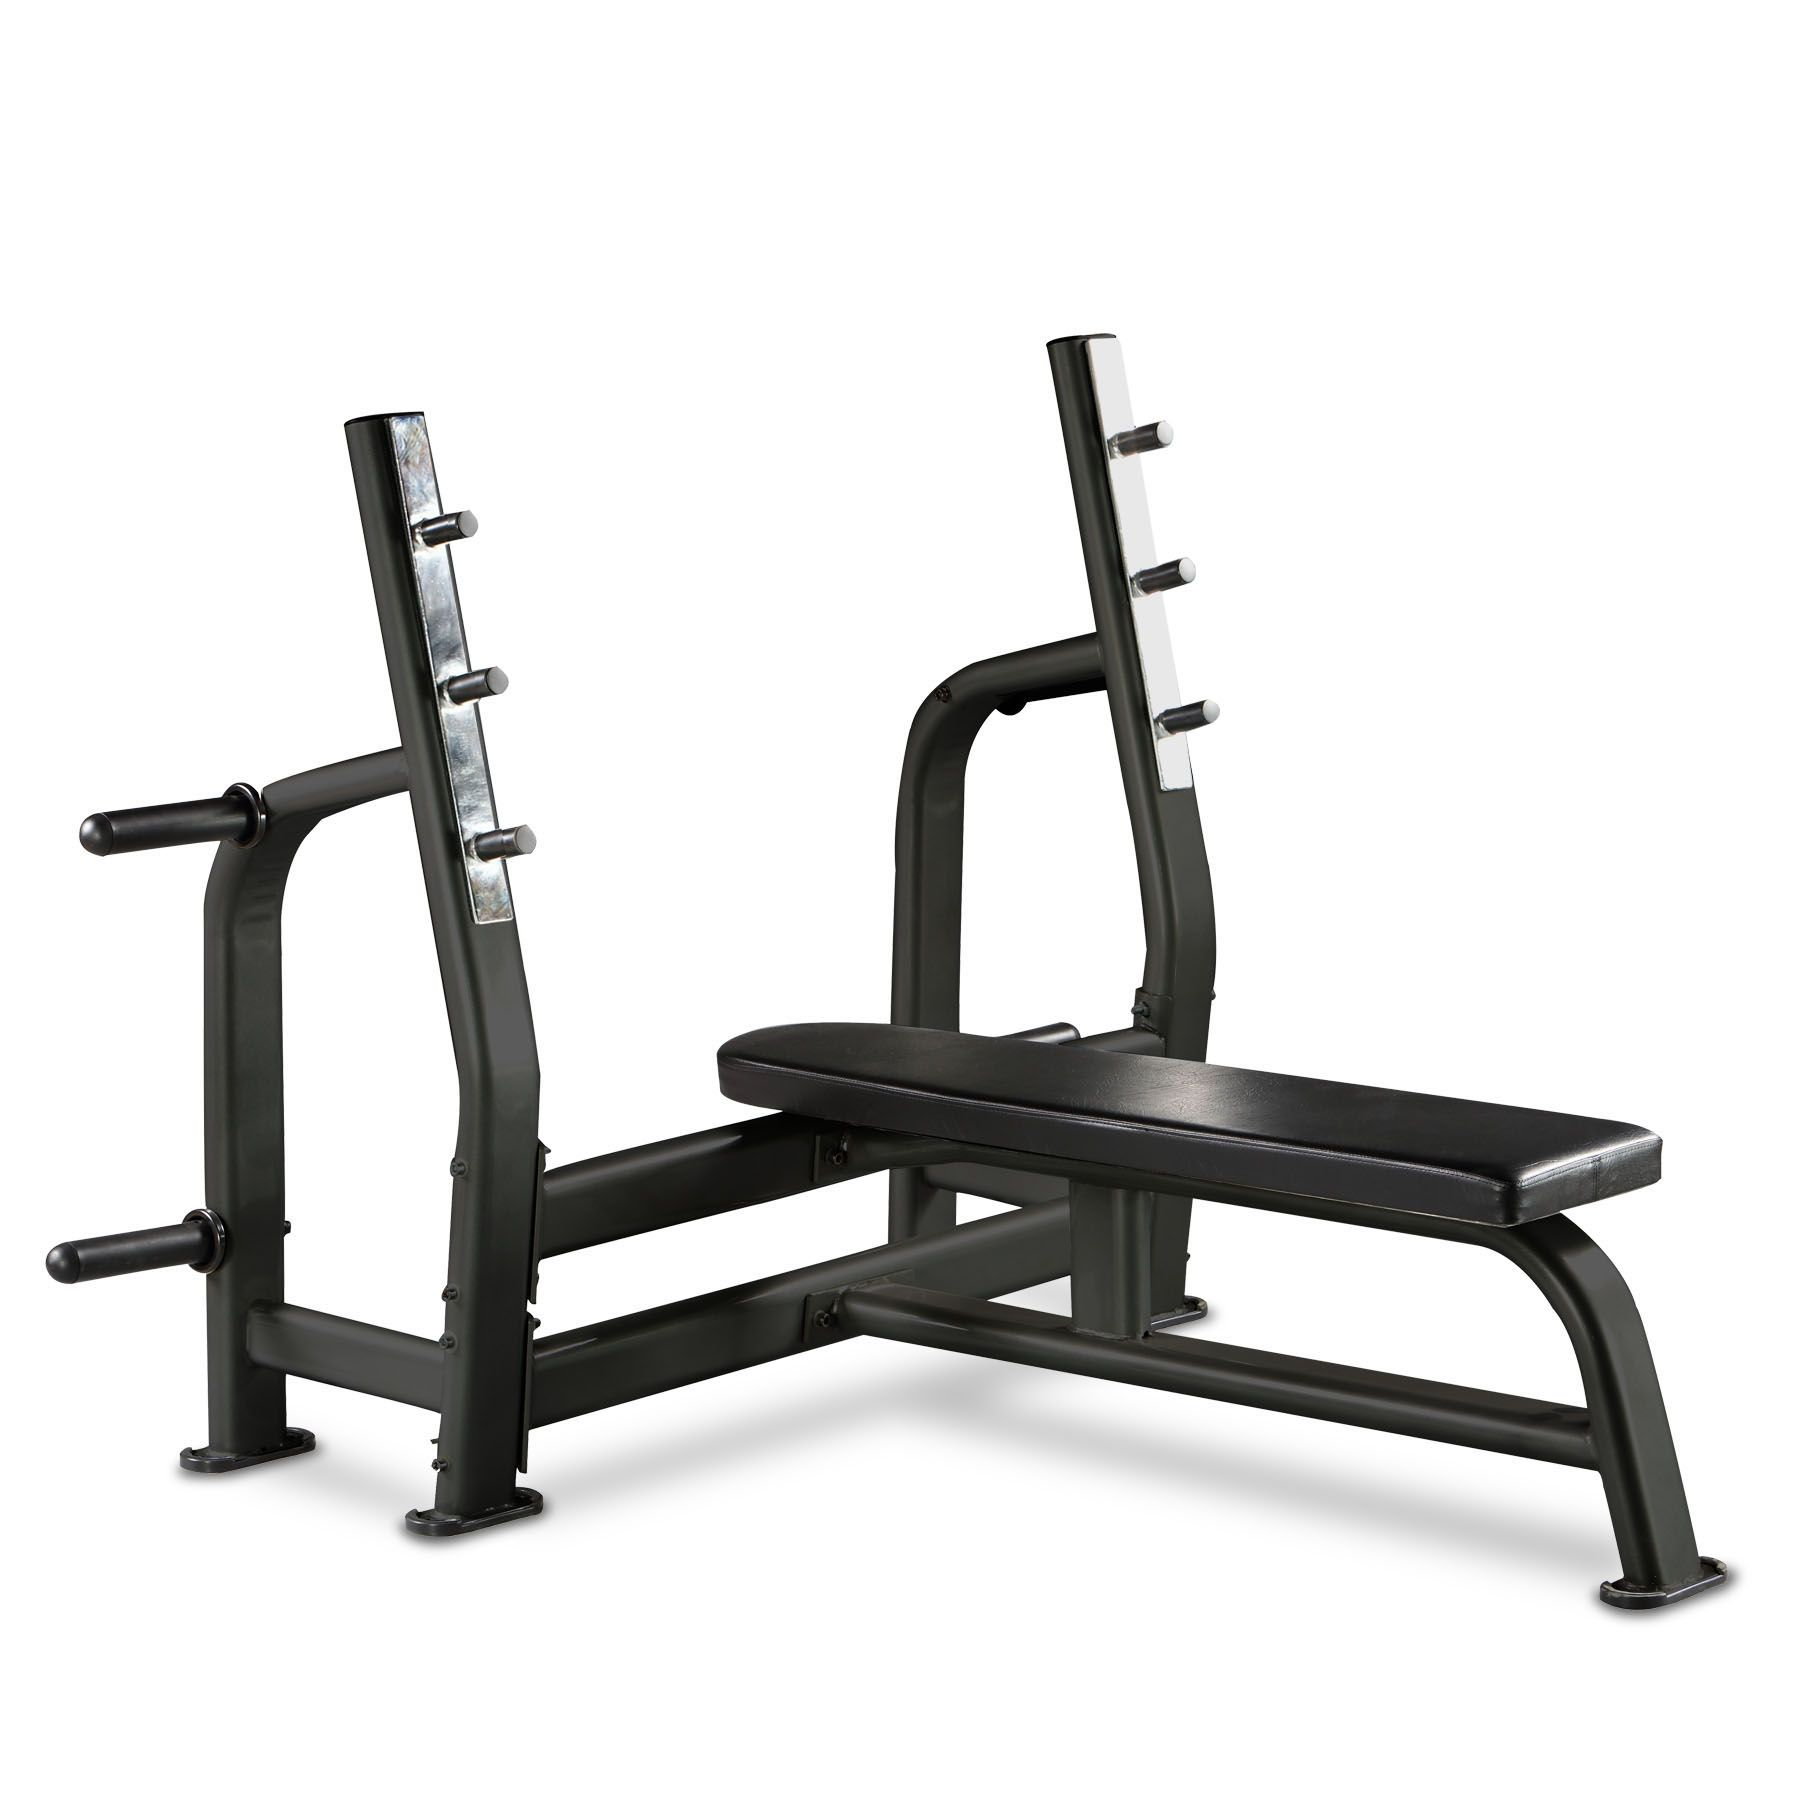 Powerhouse Workout Bench | Weight Set Bench | Powerhouse Weight Bench